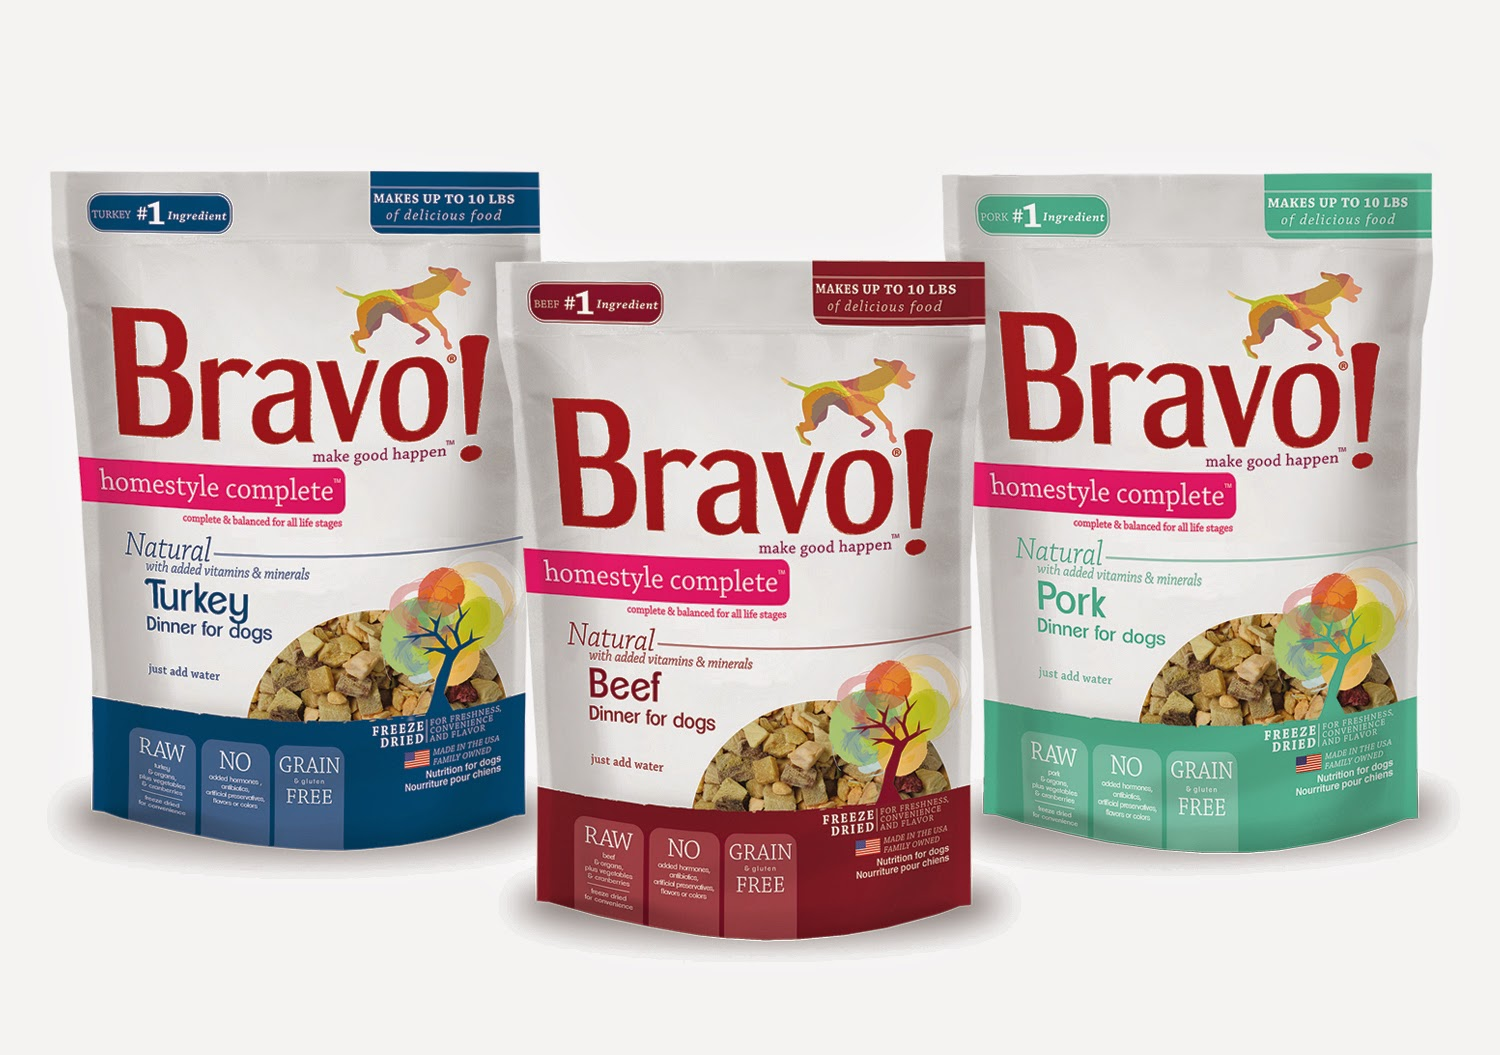 http://www.newbravopetfood.com/homestyle_complete_family.html